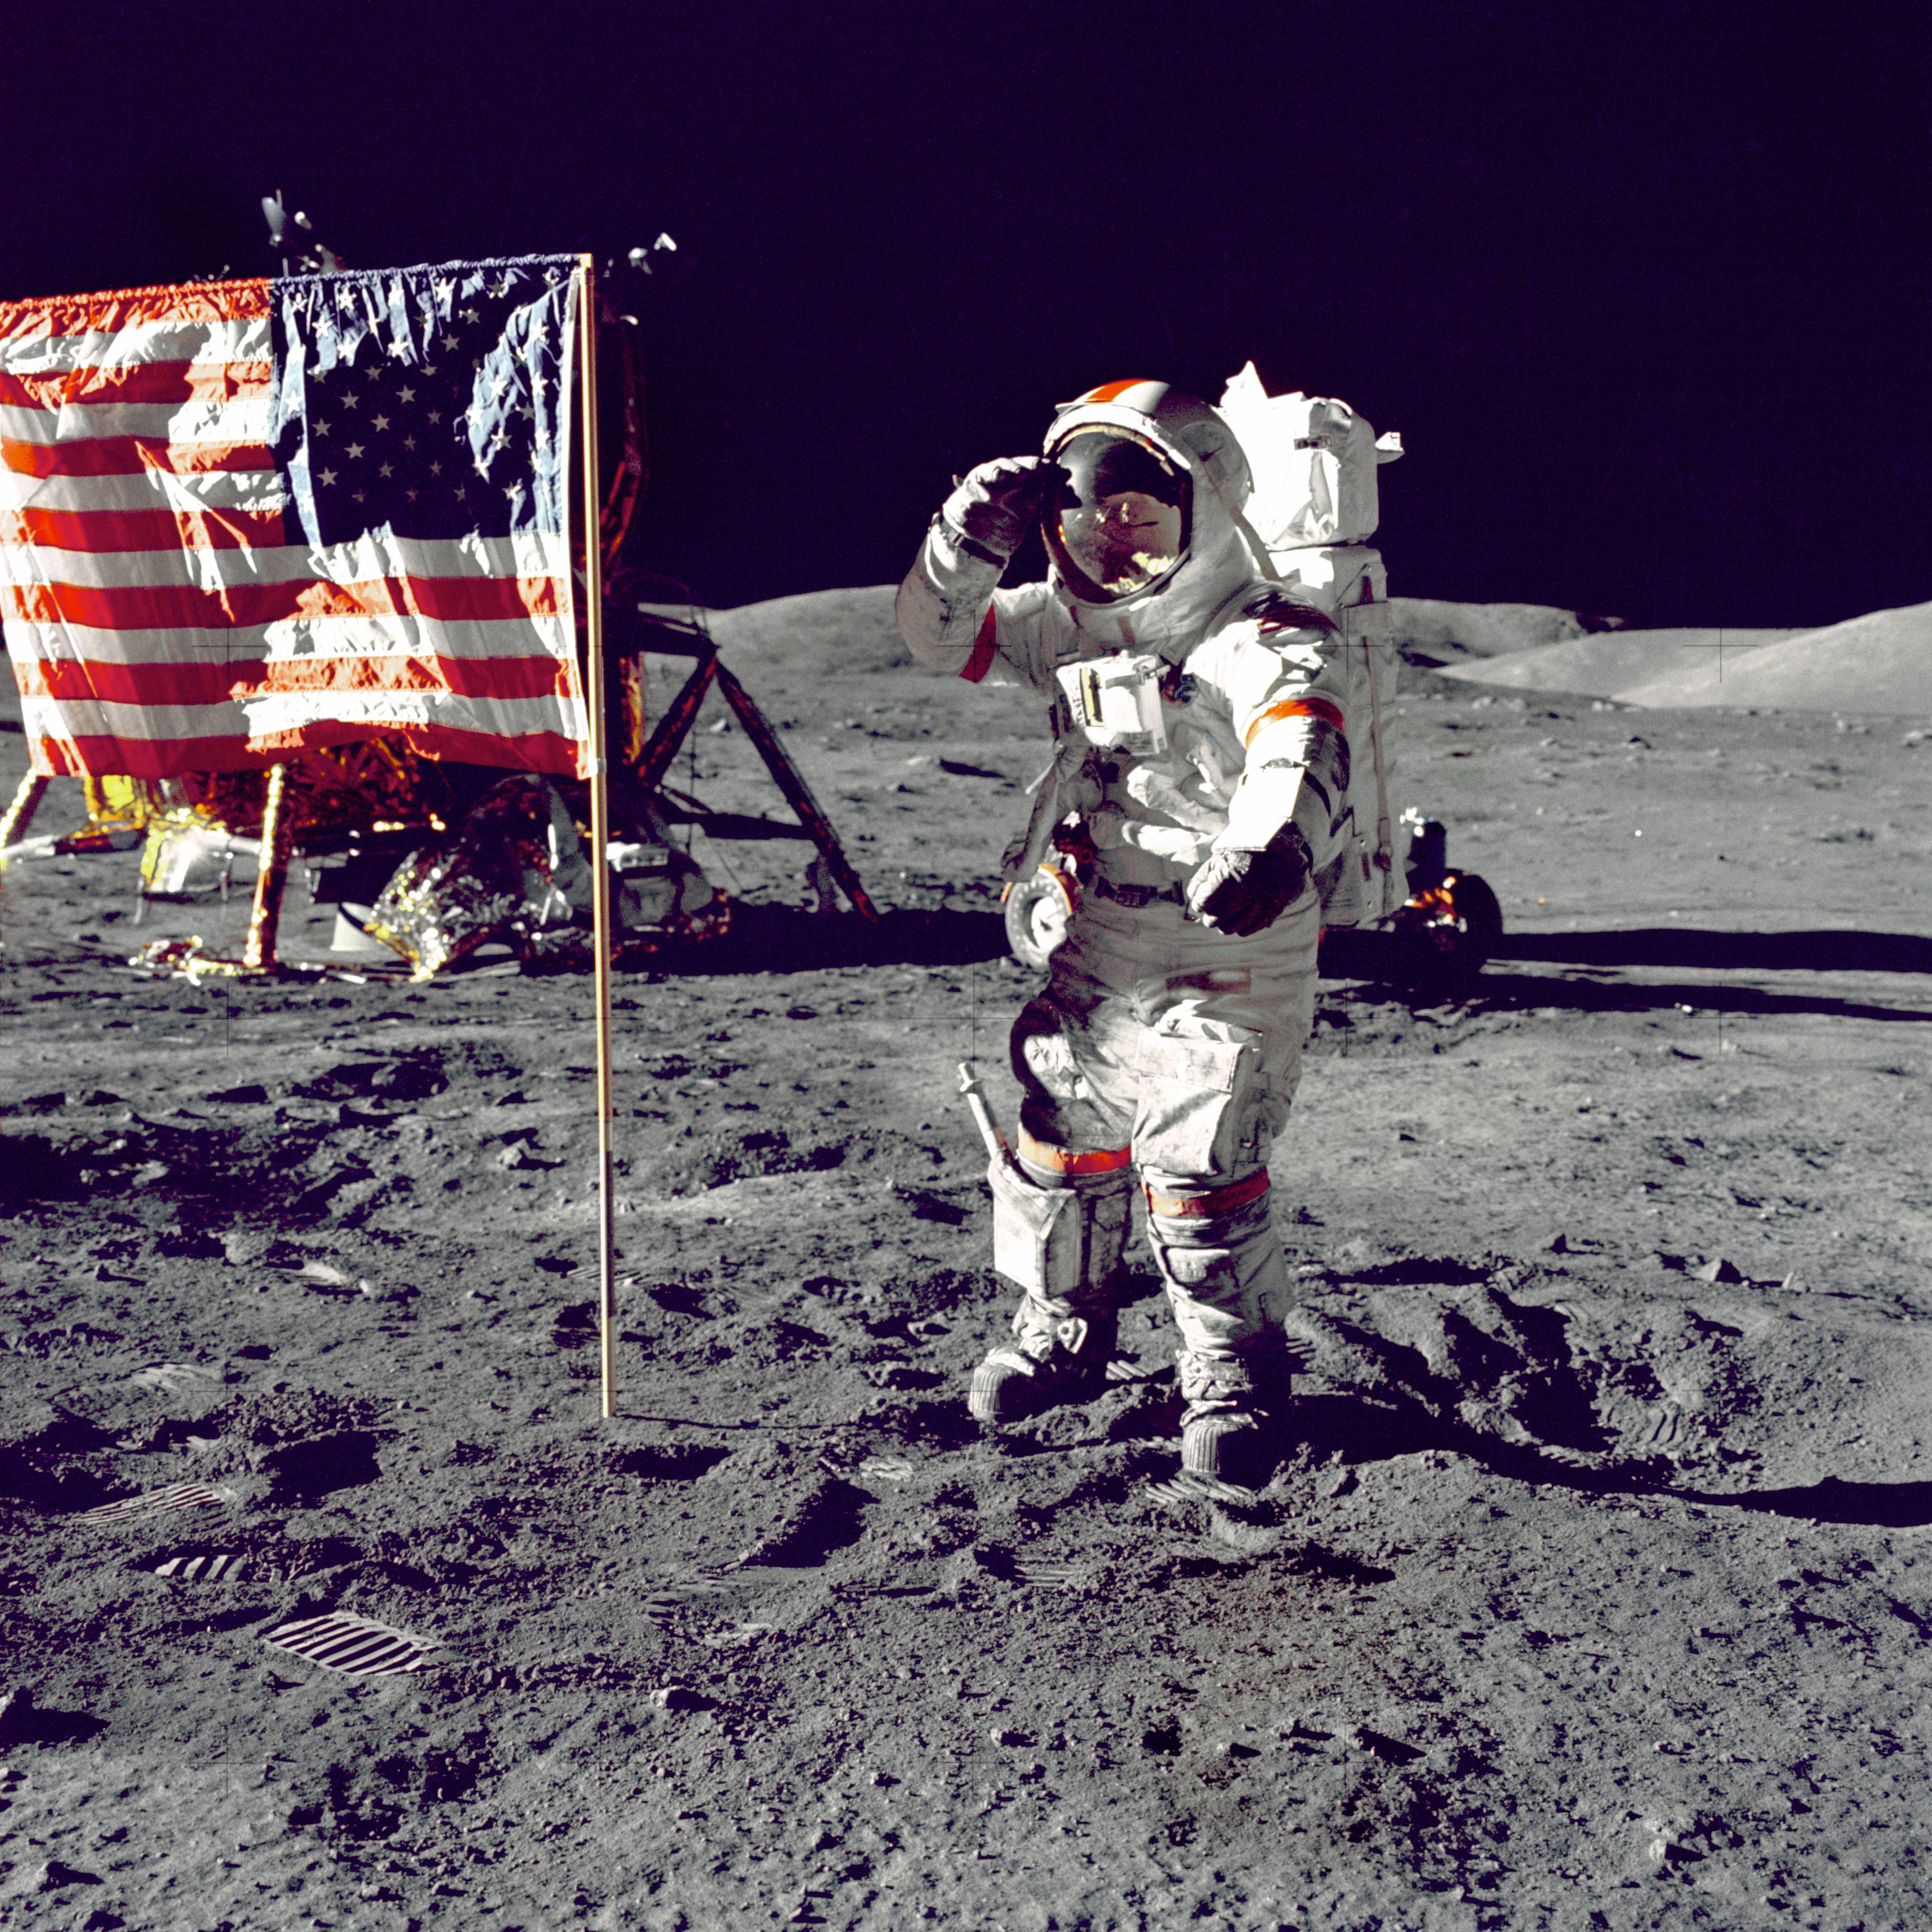 10 amazing facts about the apollo 11 moon landing - HD3000×3000